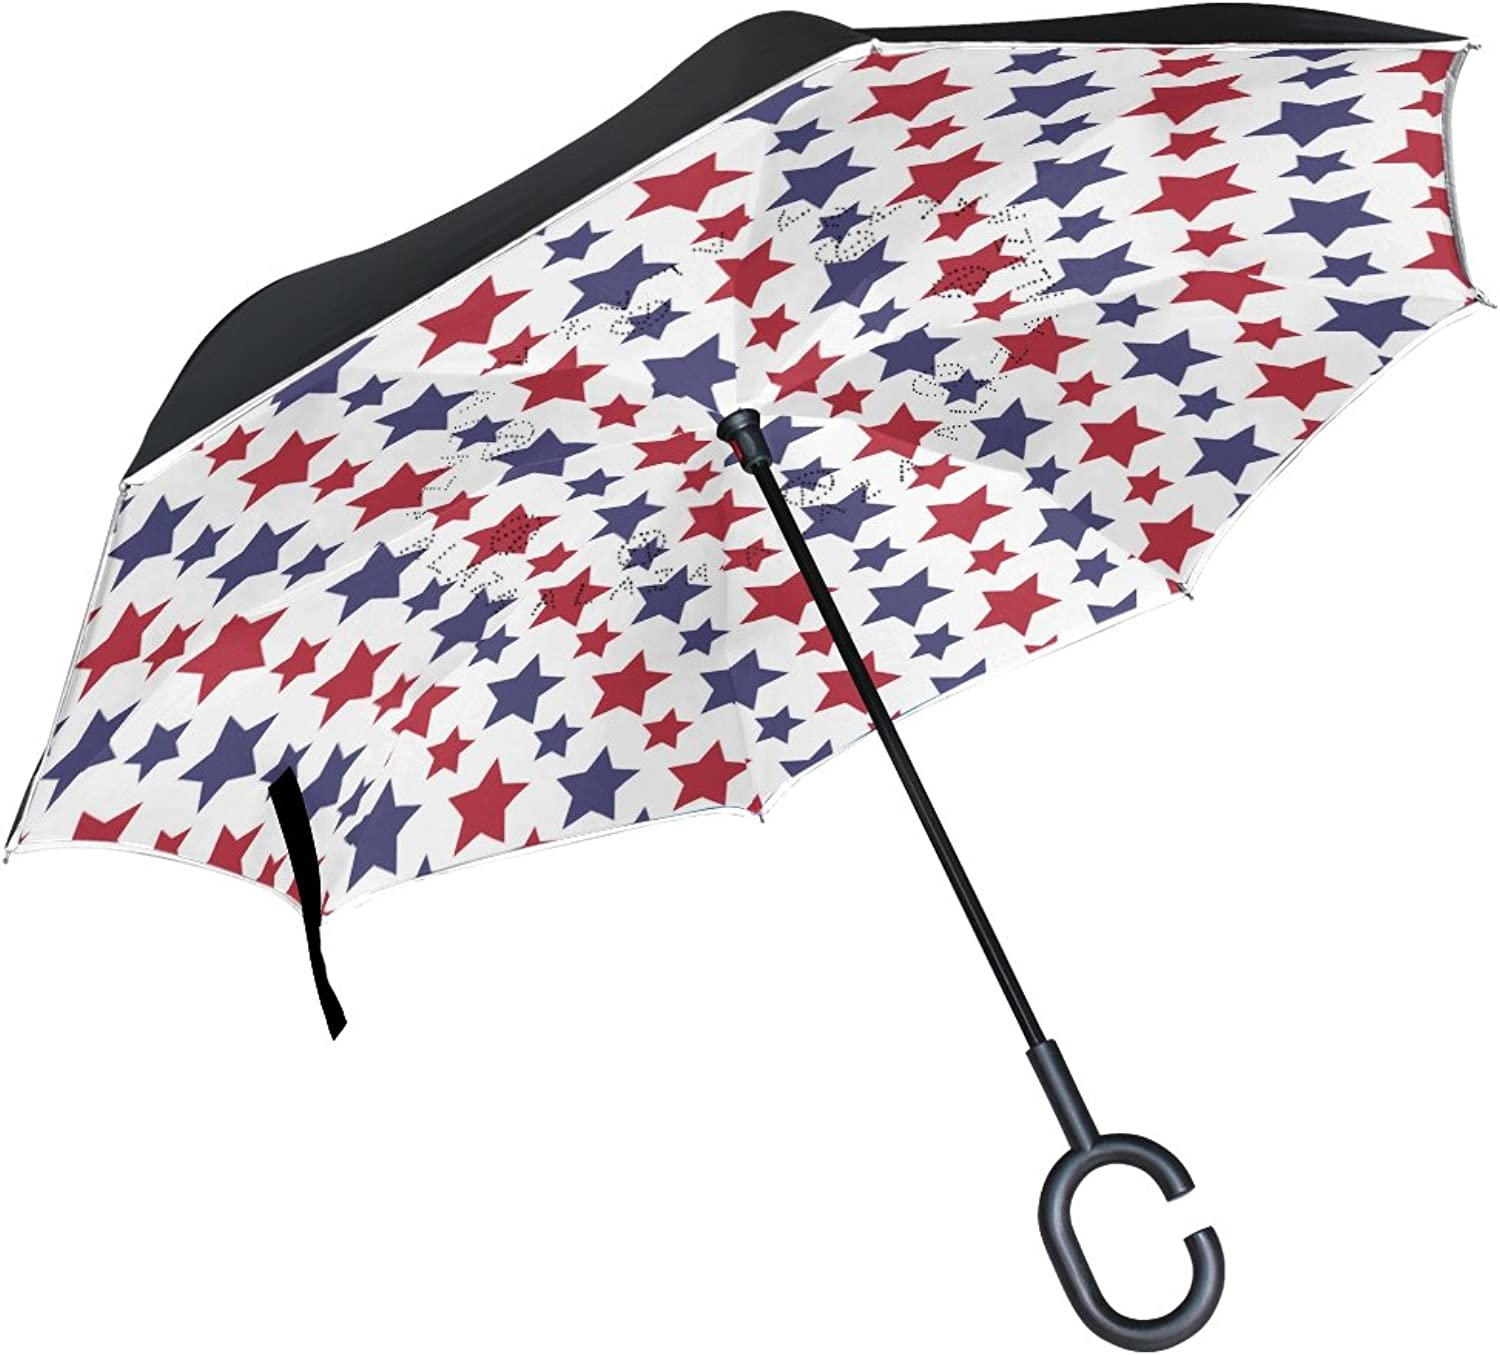 MASSIKOA Red blueee Stars Ingreened Double Layer Straight Umbrellas Inside-Out Reversible Umbrella with C-Shaped Handle for Rain Sun Car Use